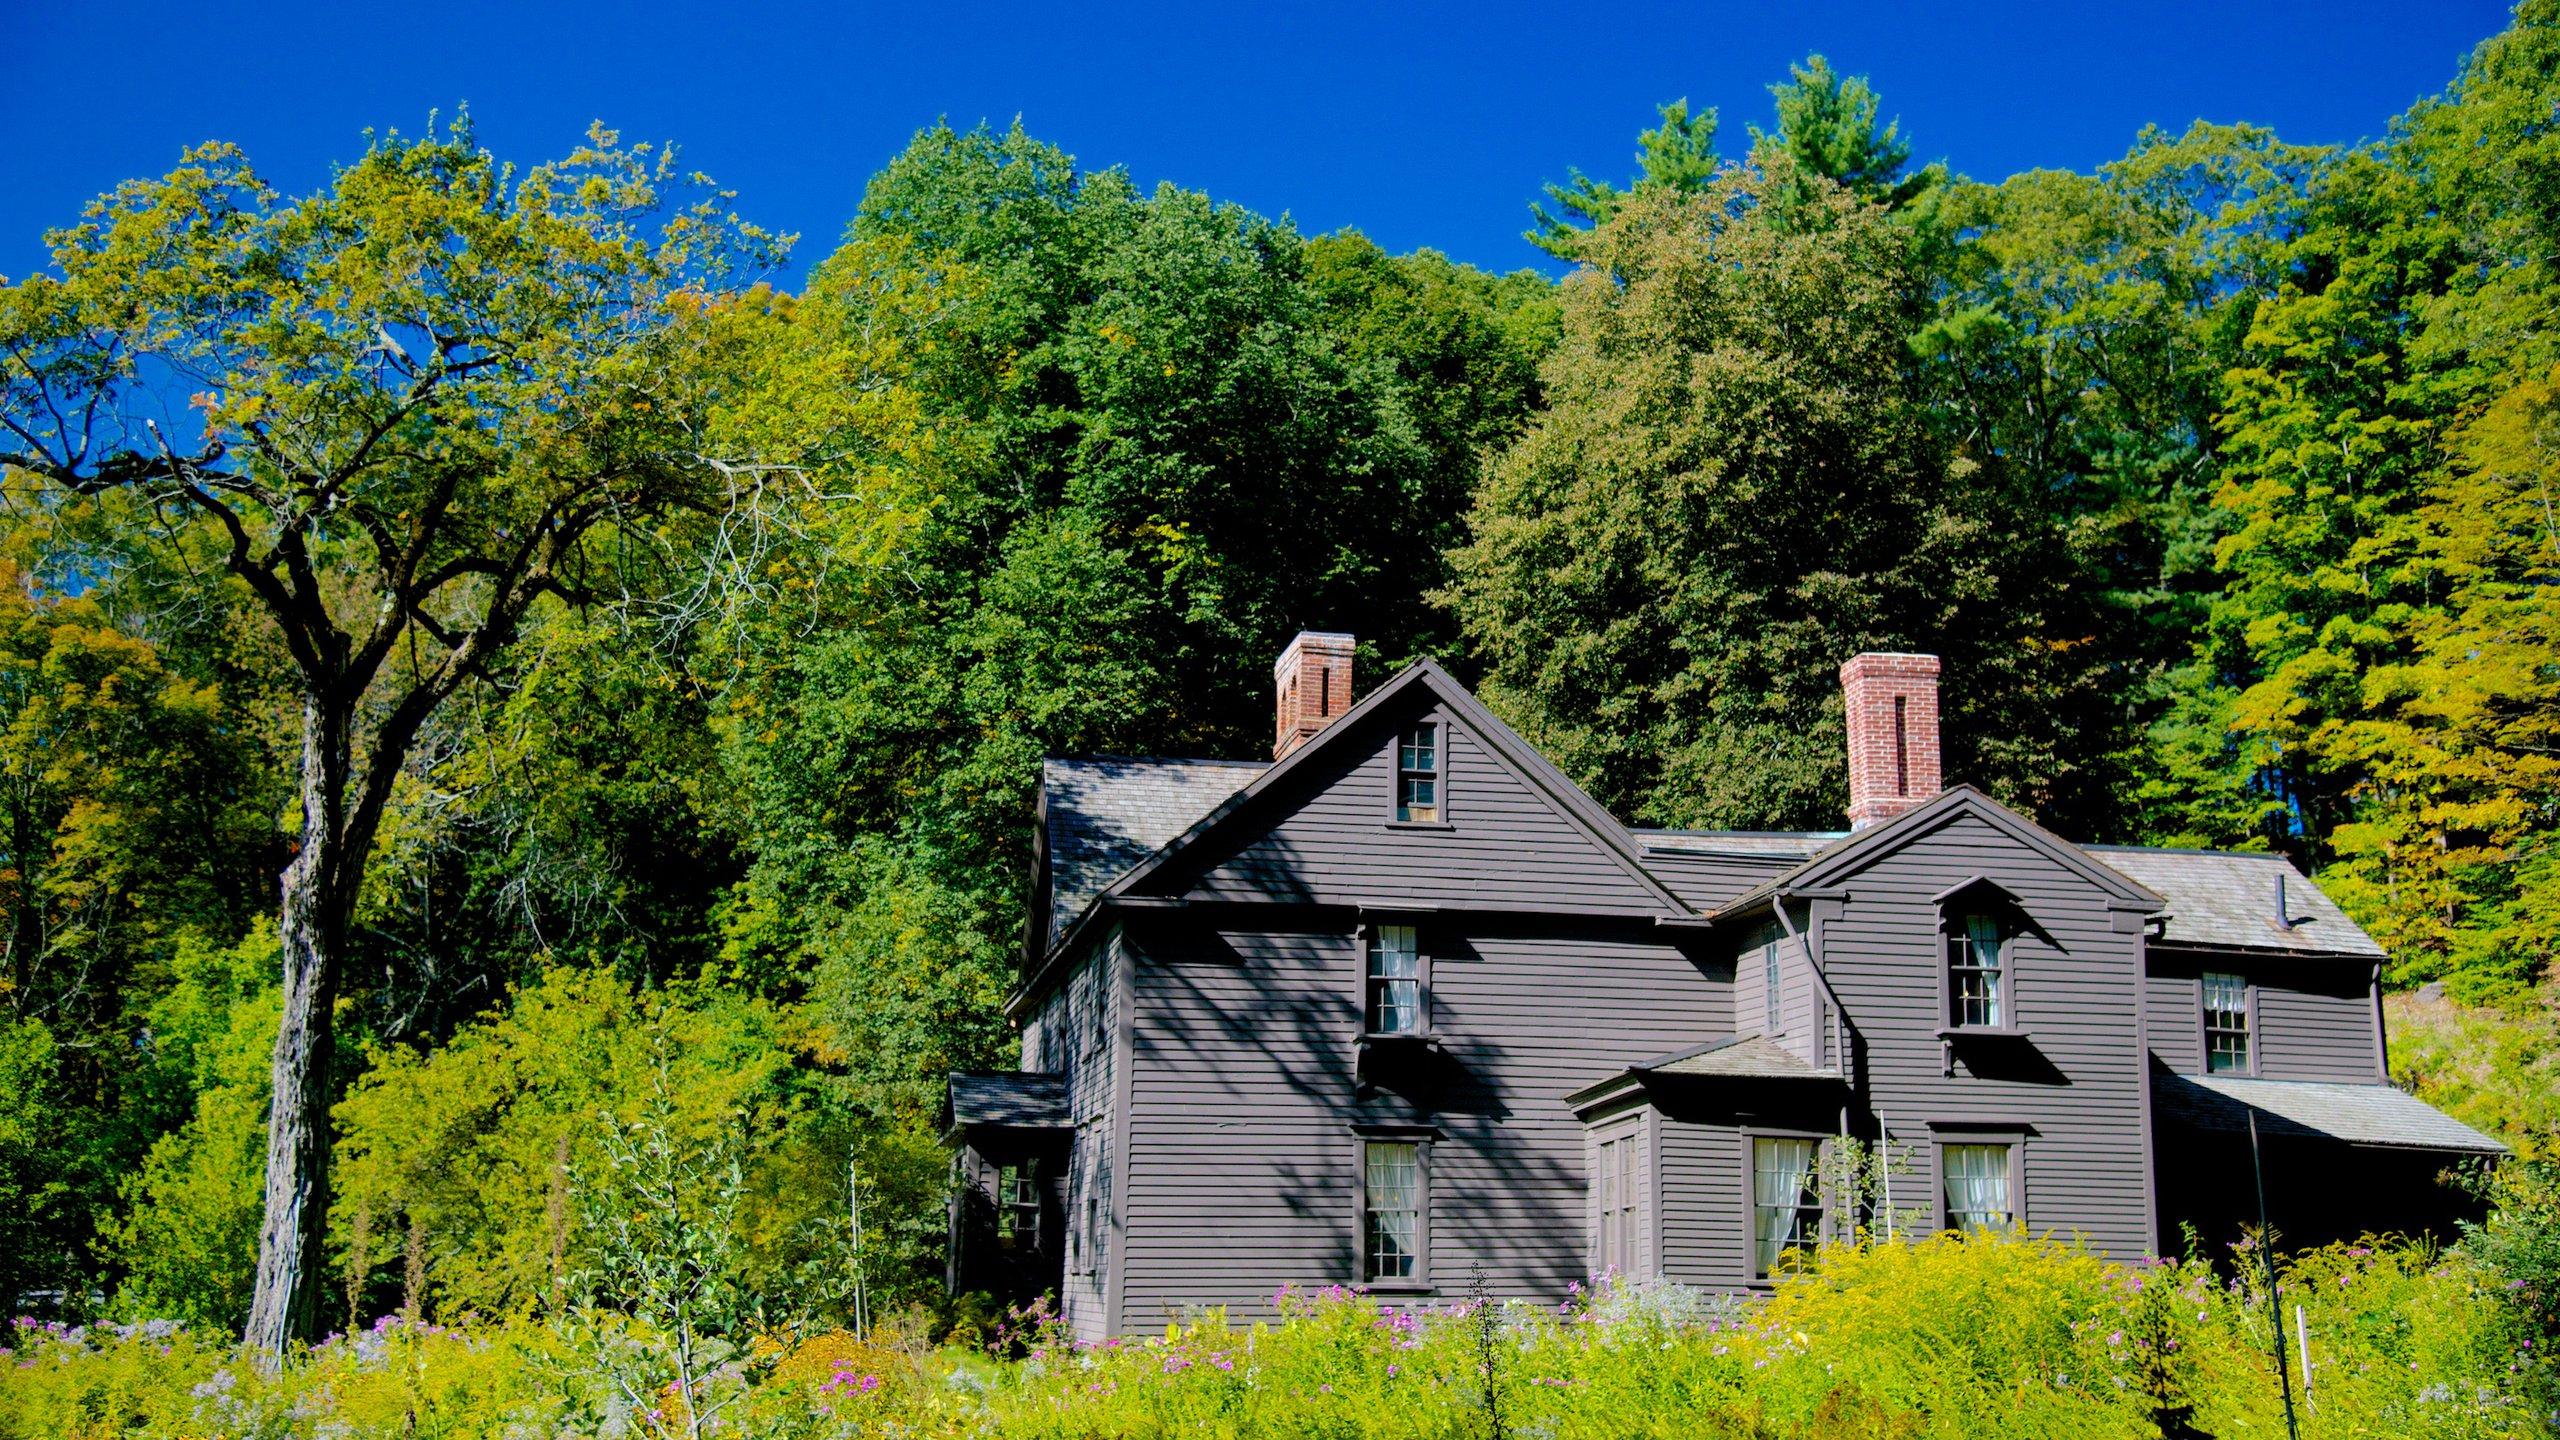 Louisa May Alcott's Orchard House, Concord, Massachusetts, United States of America